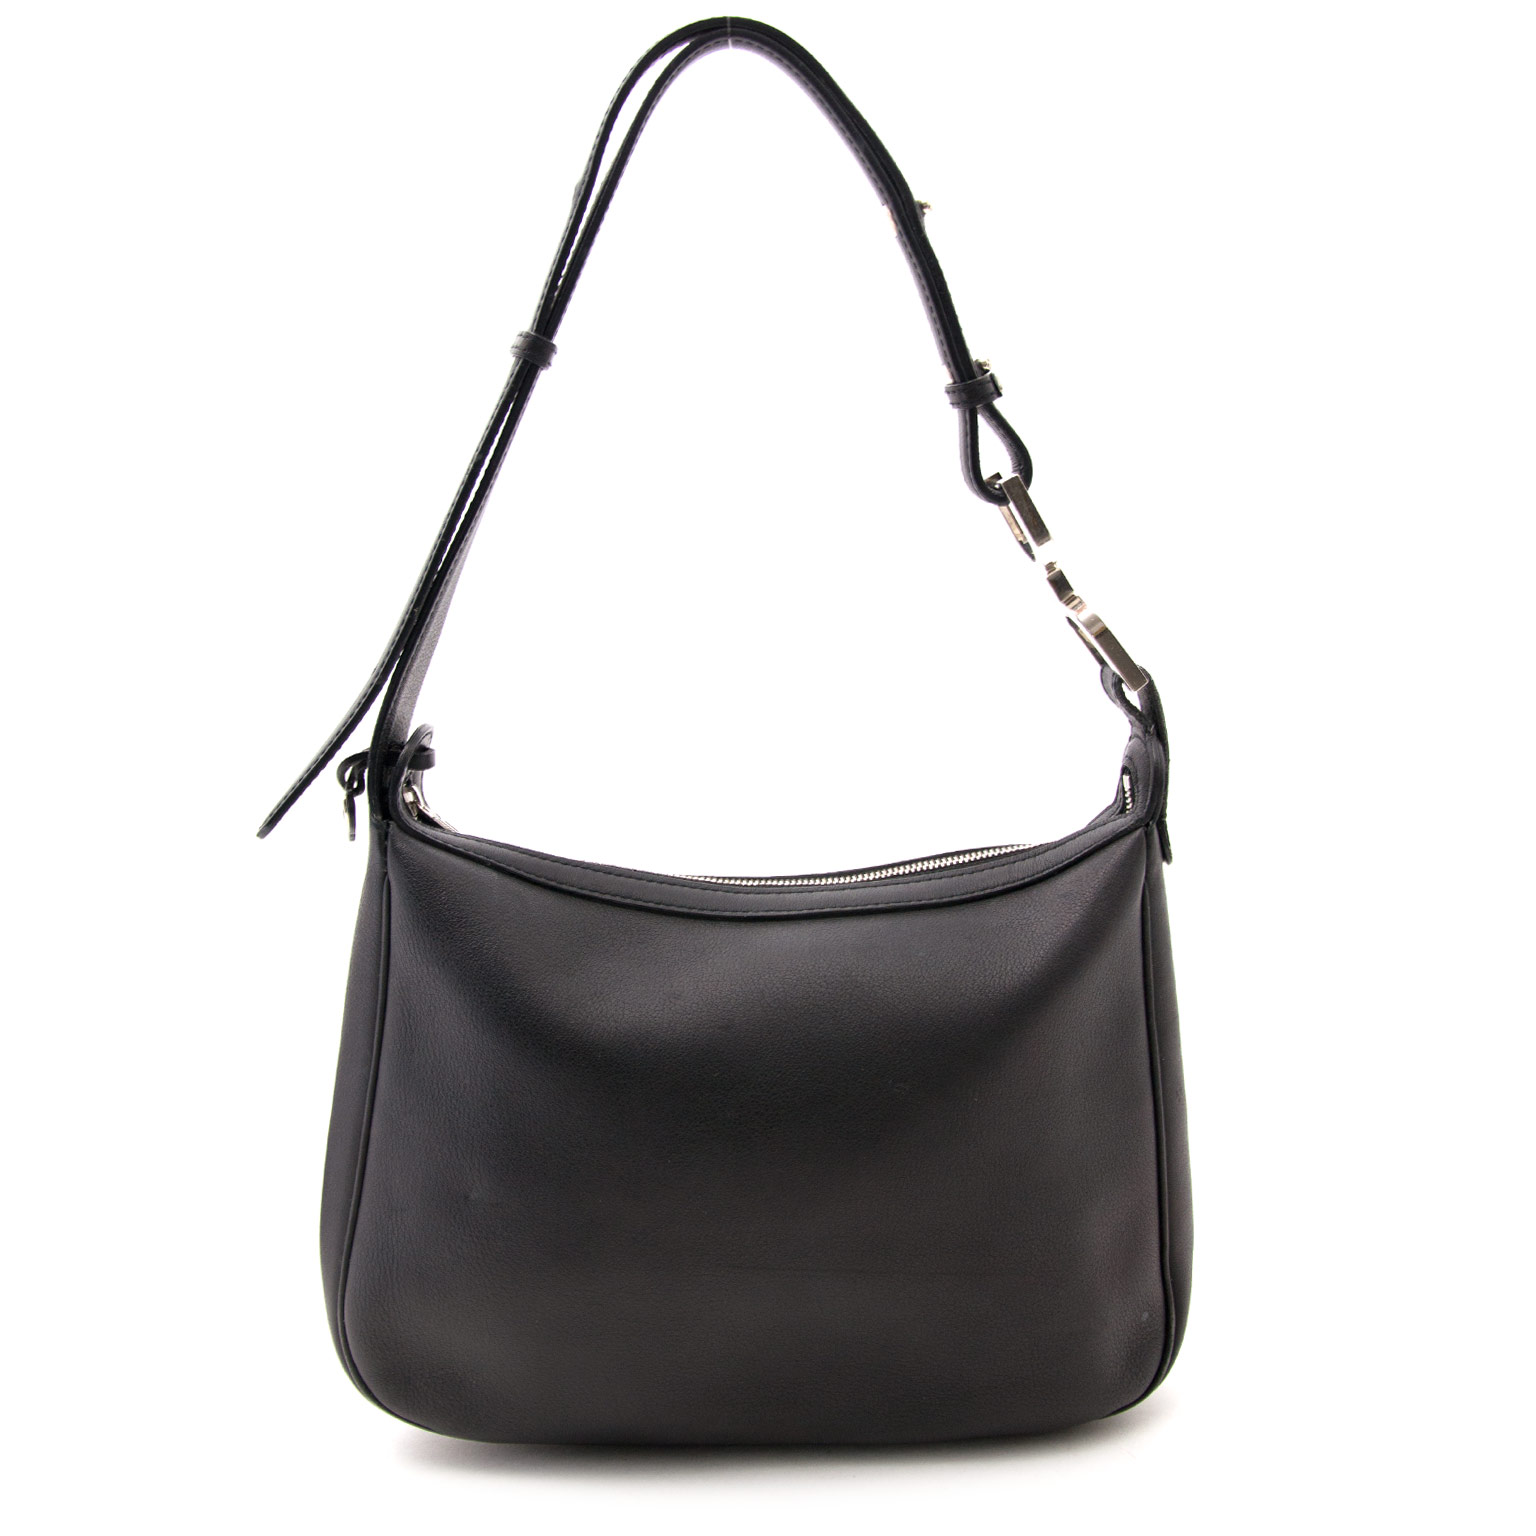 We buy and sell your timeless luxury bags such as Delvaux Black Leather Shoulder Bag